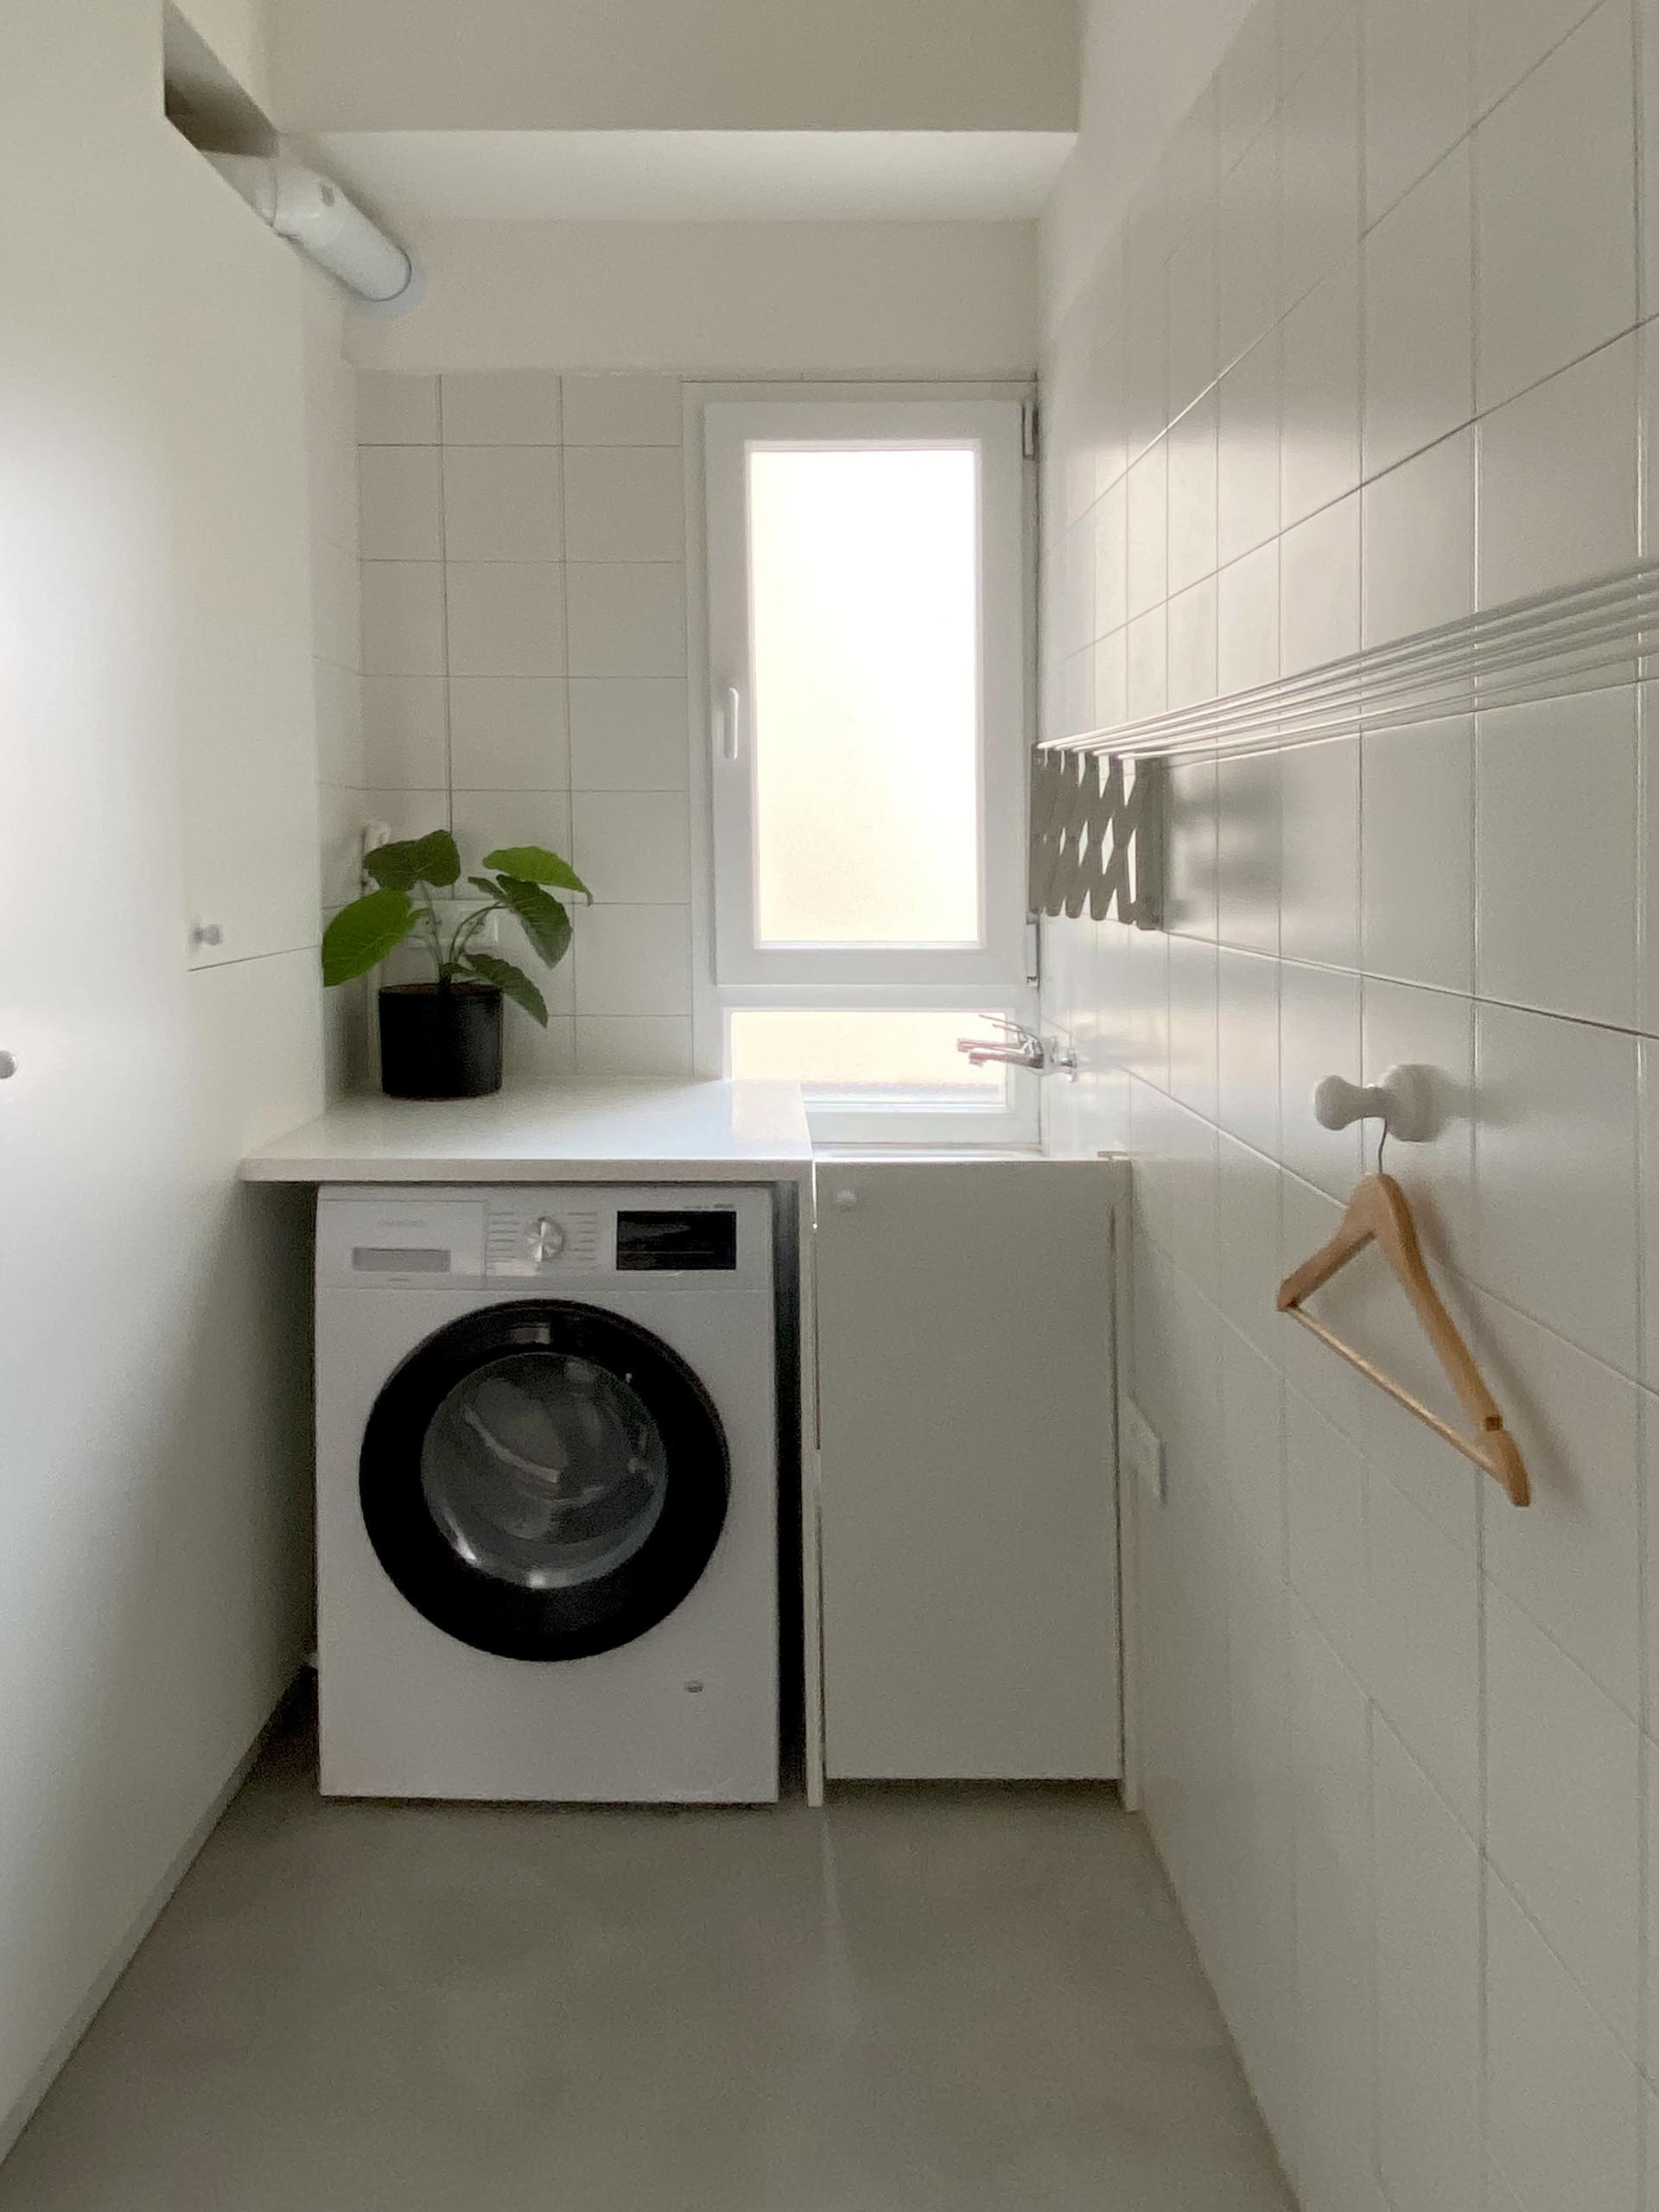 A small laundry with square white tiles and a sink below the window.